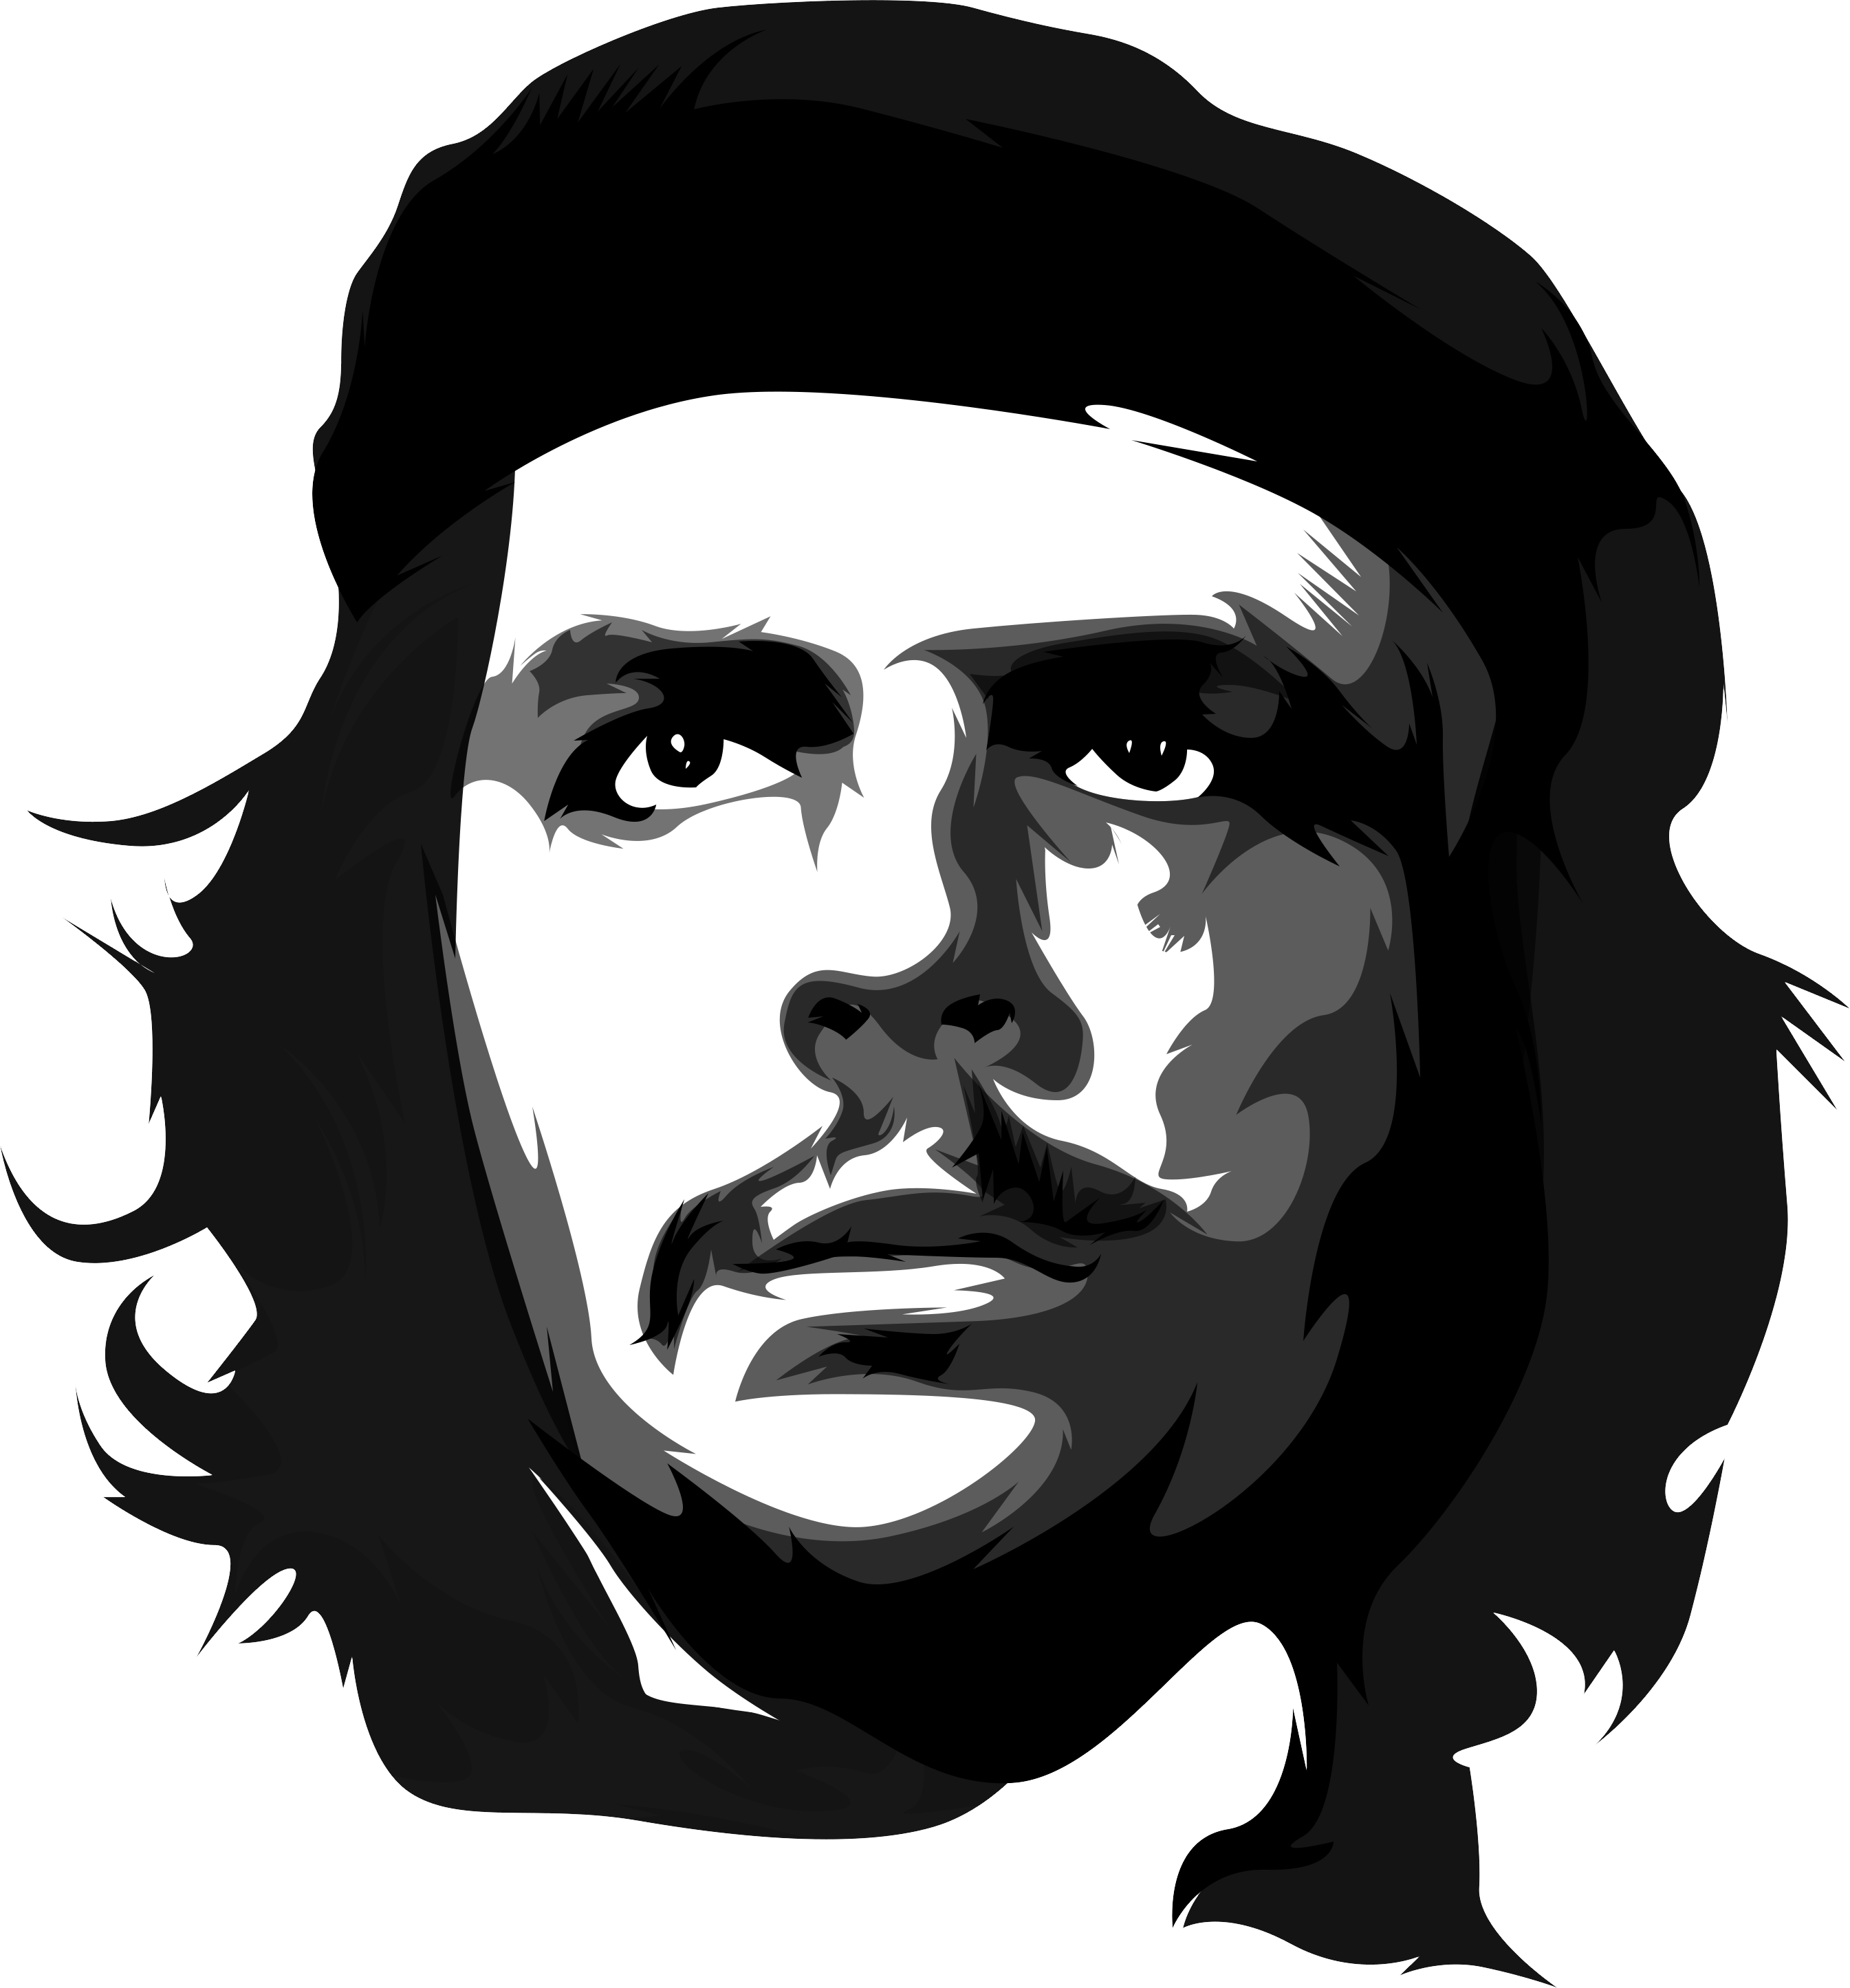 che guevara png images for download crazypngm crazy png images download #30271